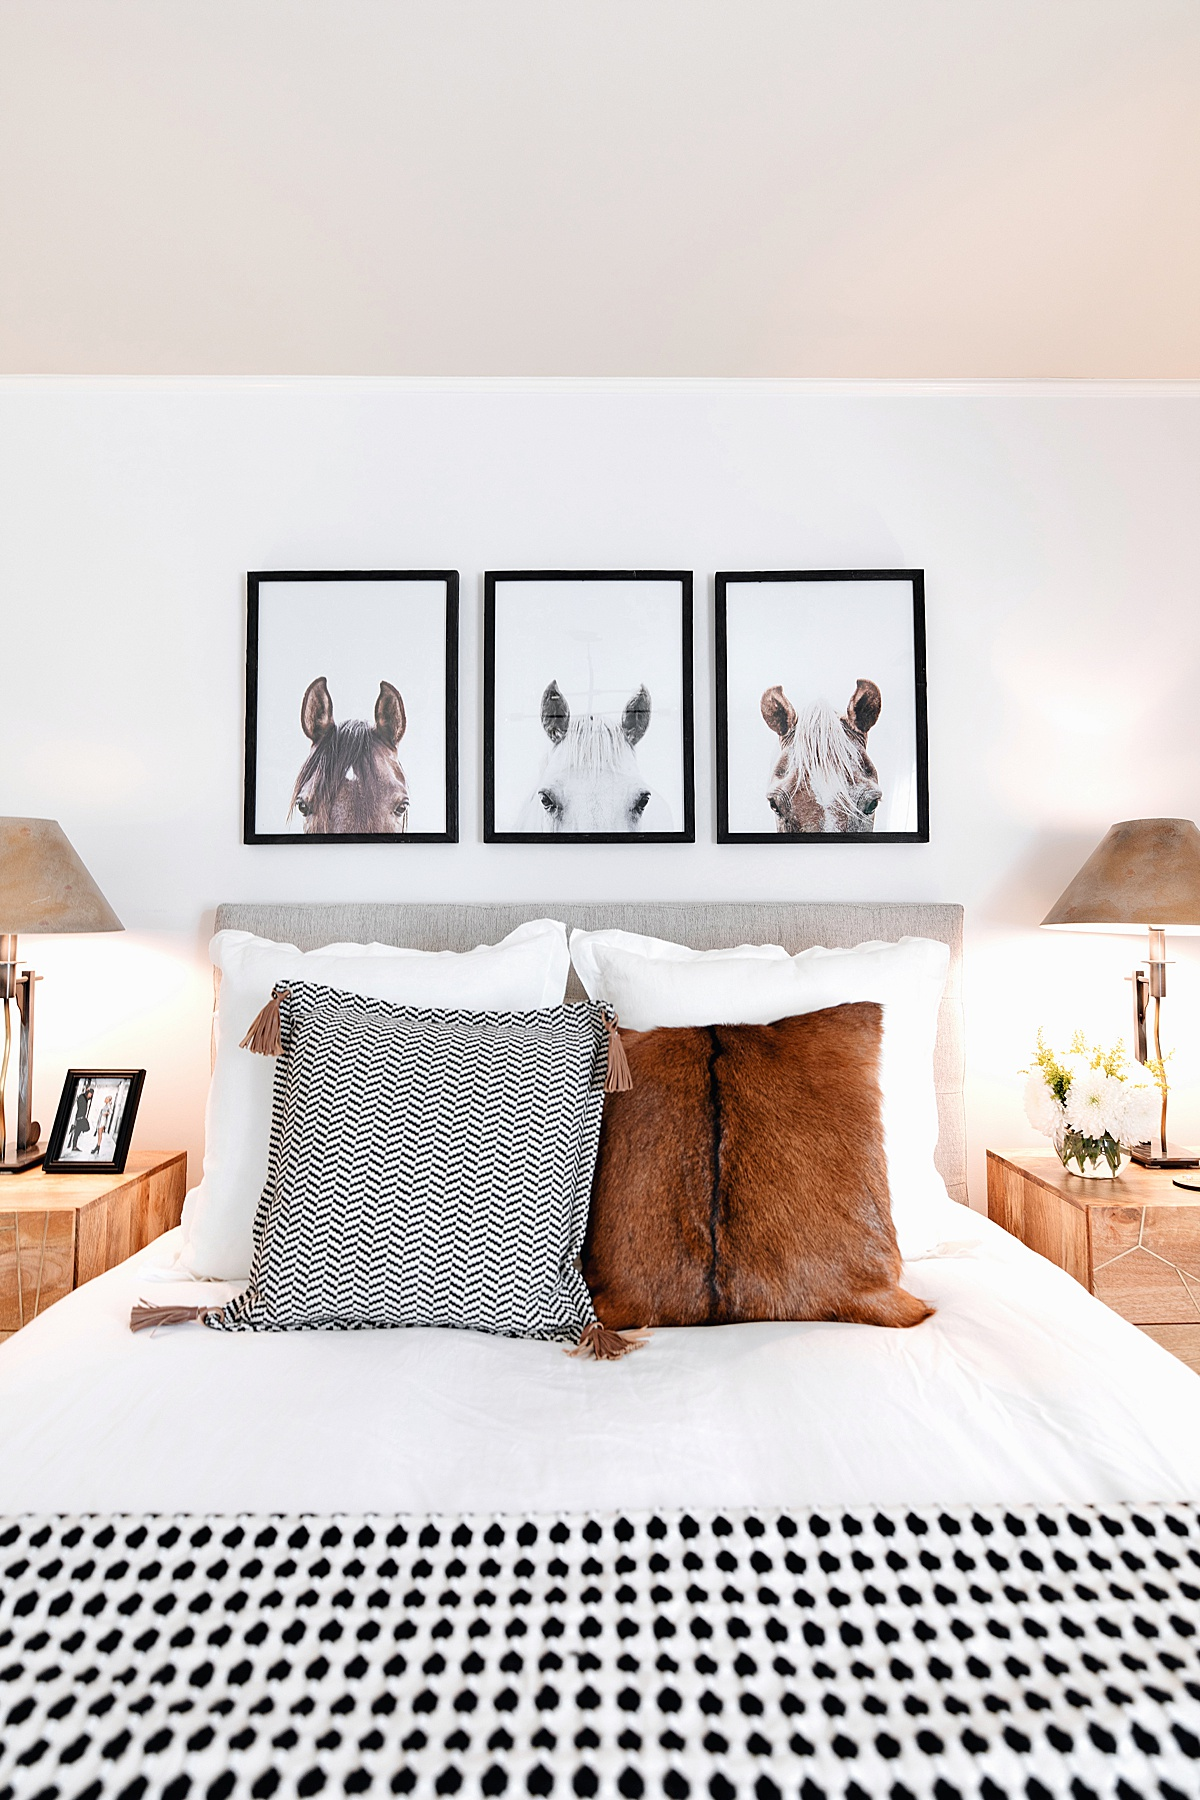 olivia rink decor, olivia rink design, olivia rink bedroom, kentucky home decor, horse home decor, west elm bedroom, bedroom inspiration, bedroom decor, master bedroom, blogger bedroom, kentucky beddroom, west elm, target home, cb2, modern bedroom, horse art